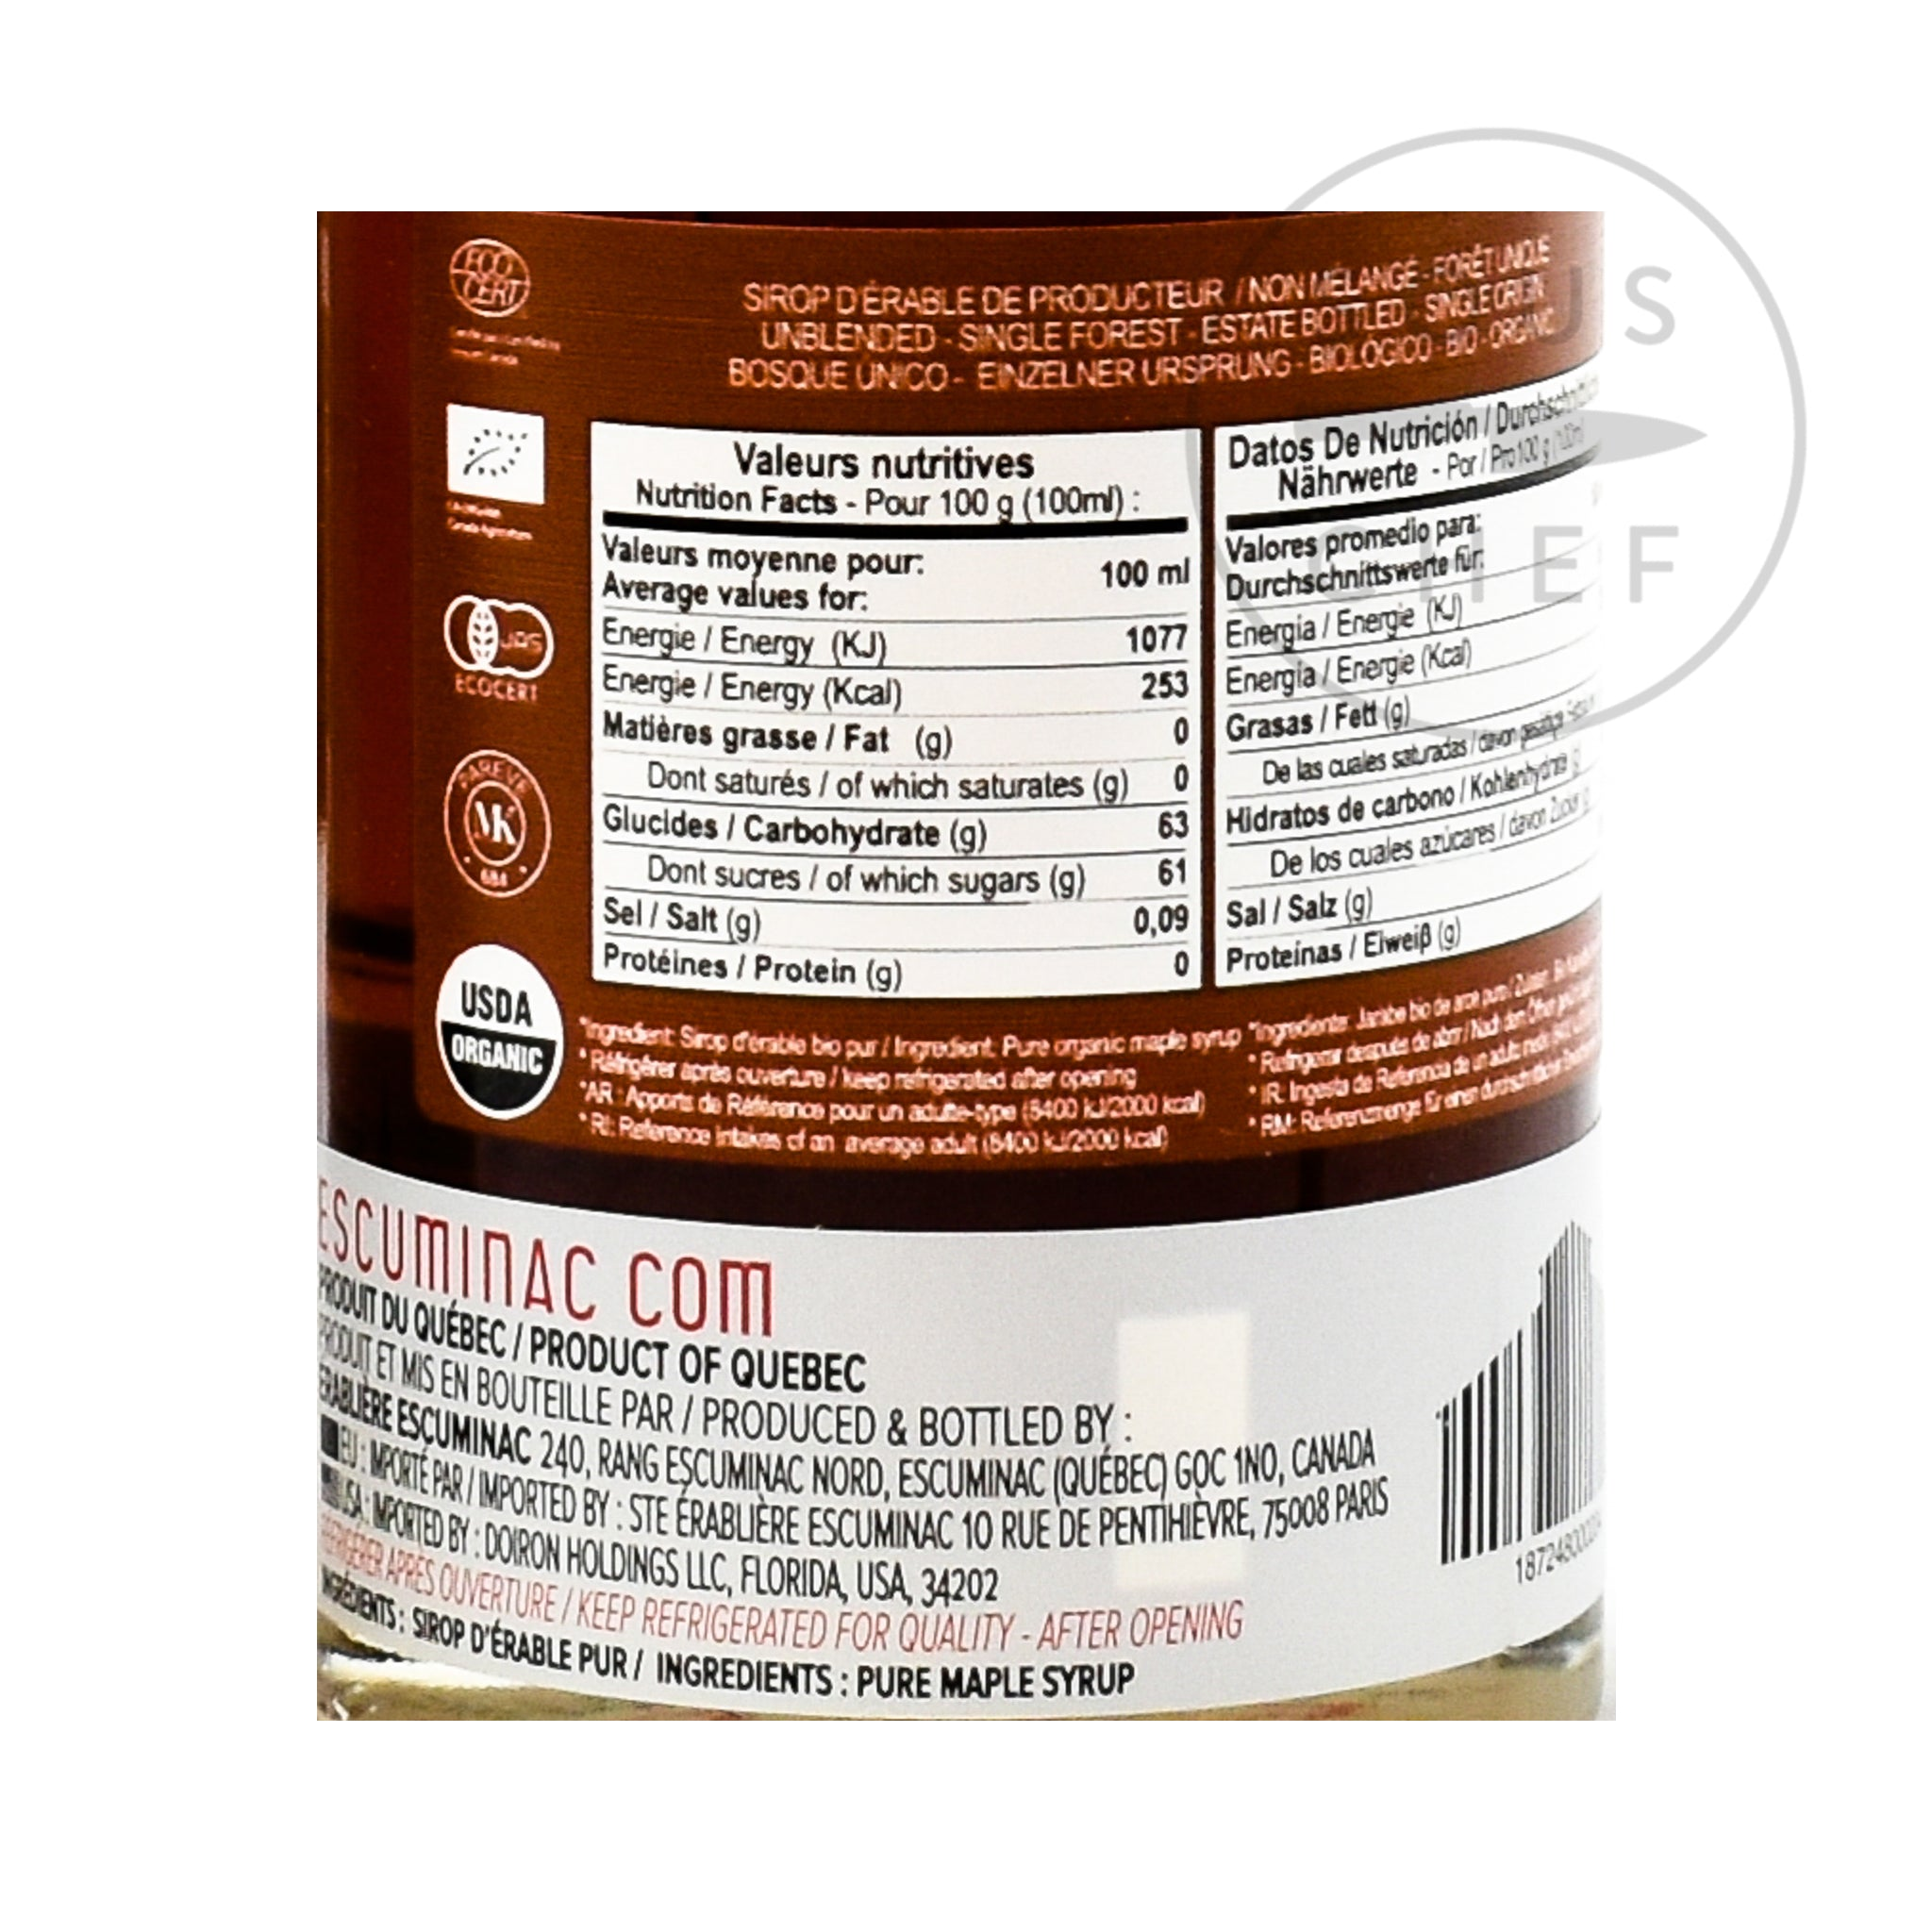 Escuminac Great Harvest Medium Maple Syrup 200ml nutritional information ingredients